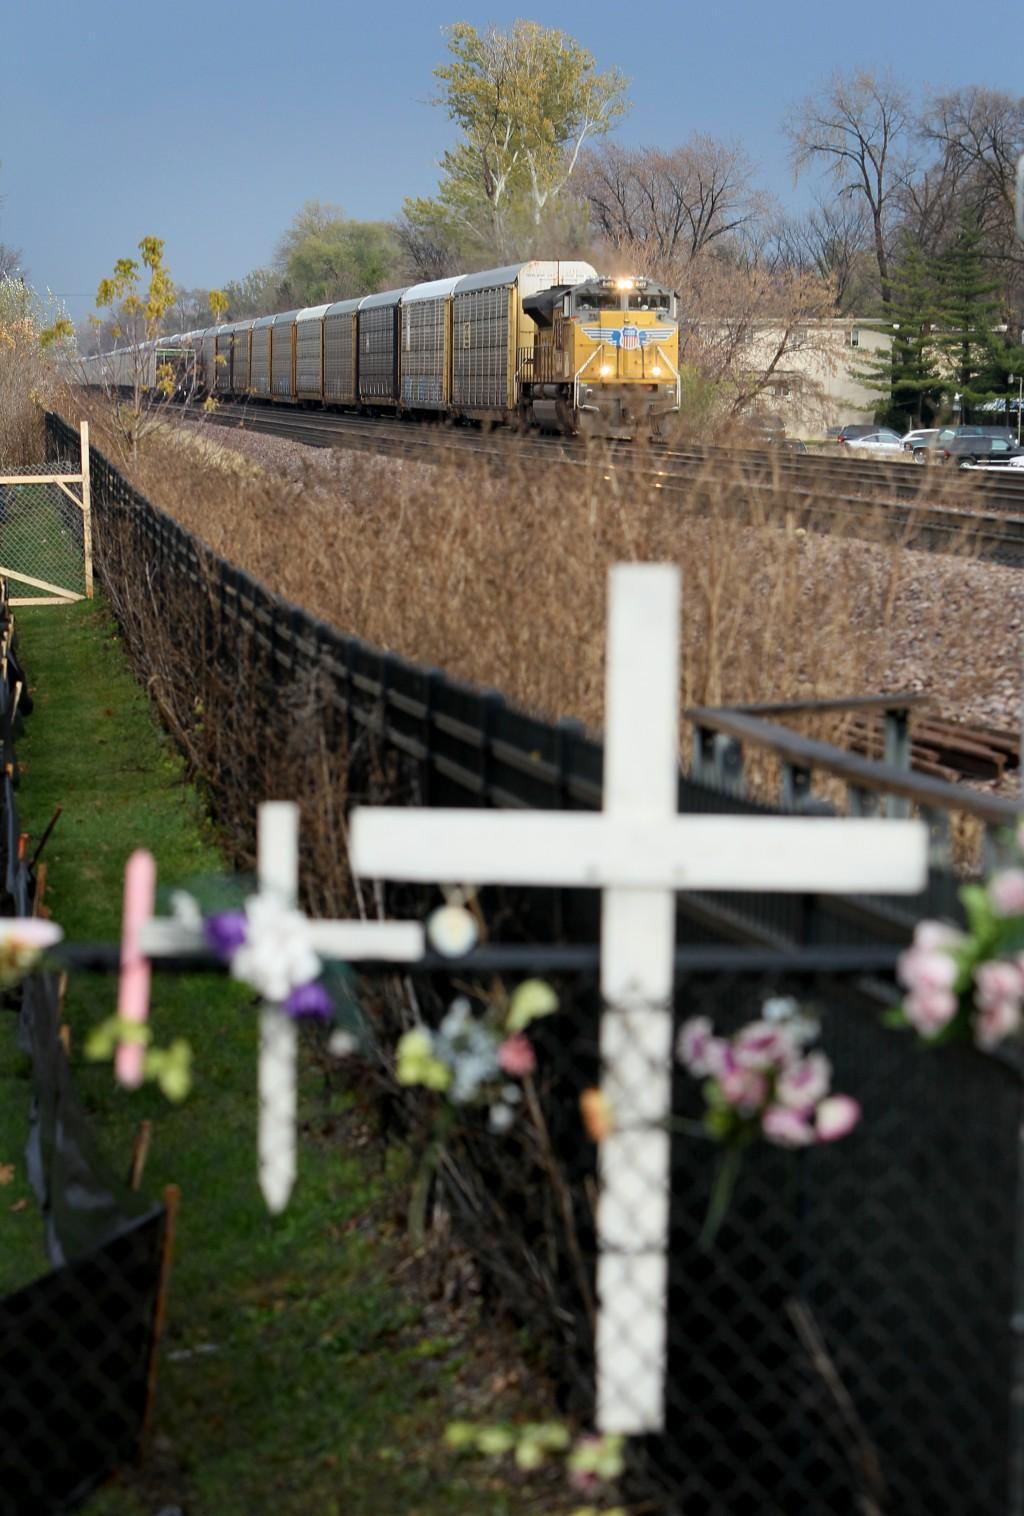 Towns, train fight over fences -- and responsibility for